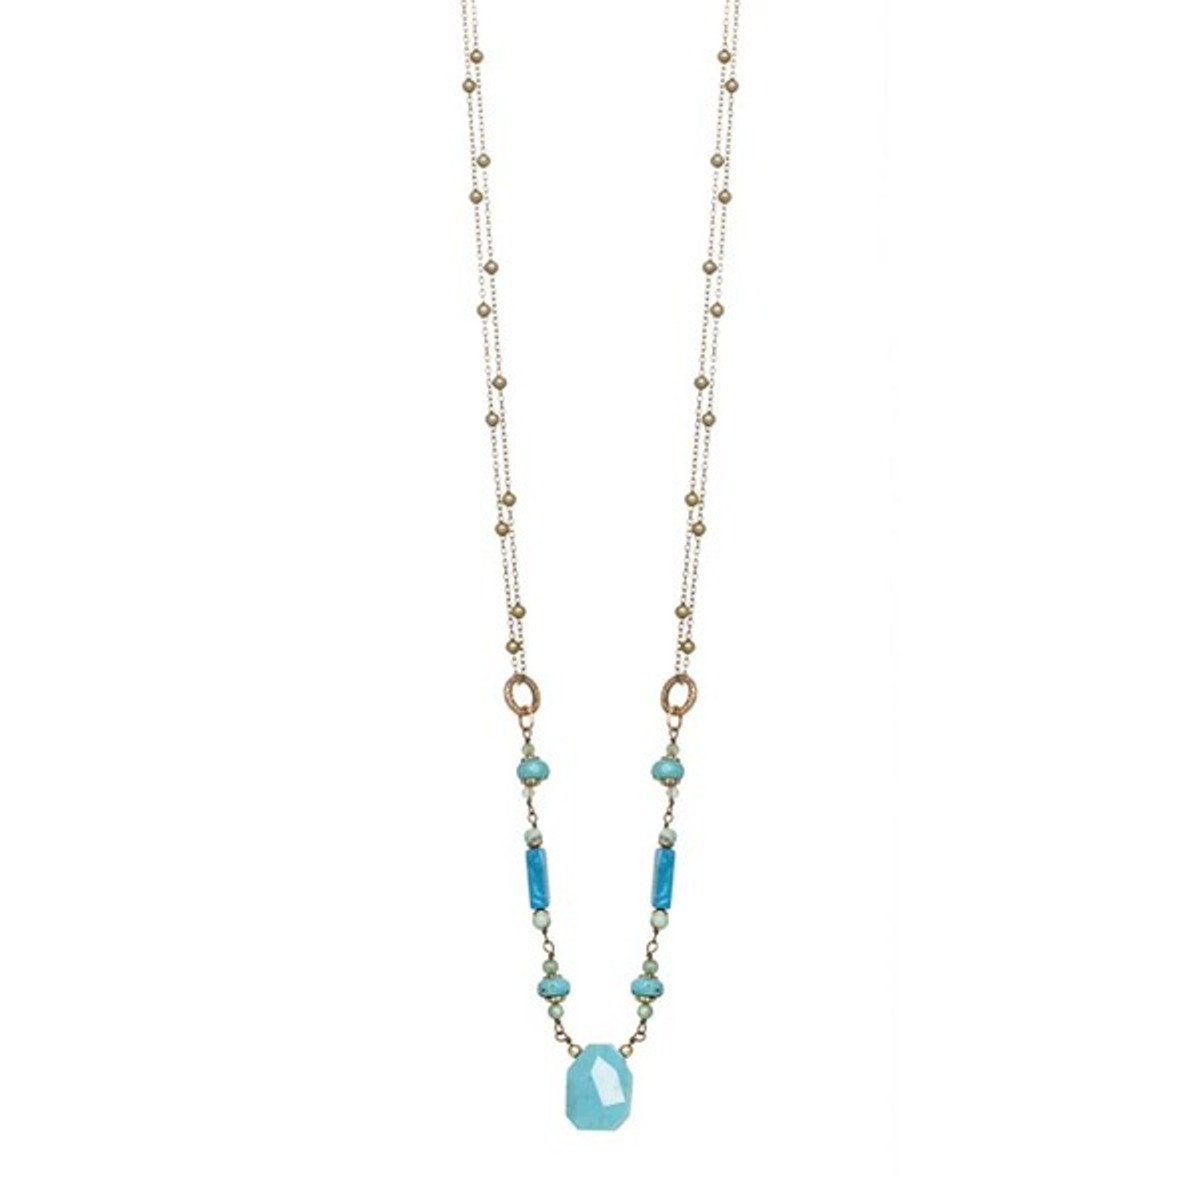 Michal Golan Jewellery Turquoise Nile Necklace